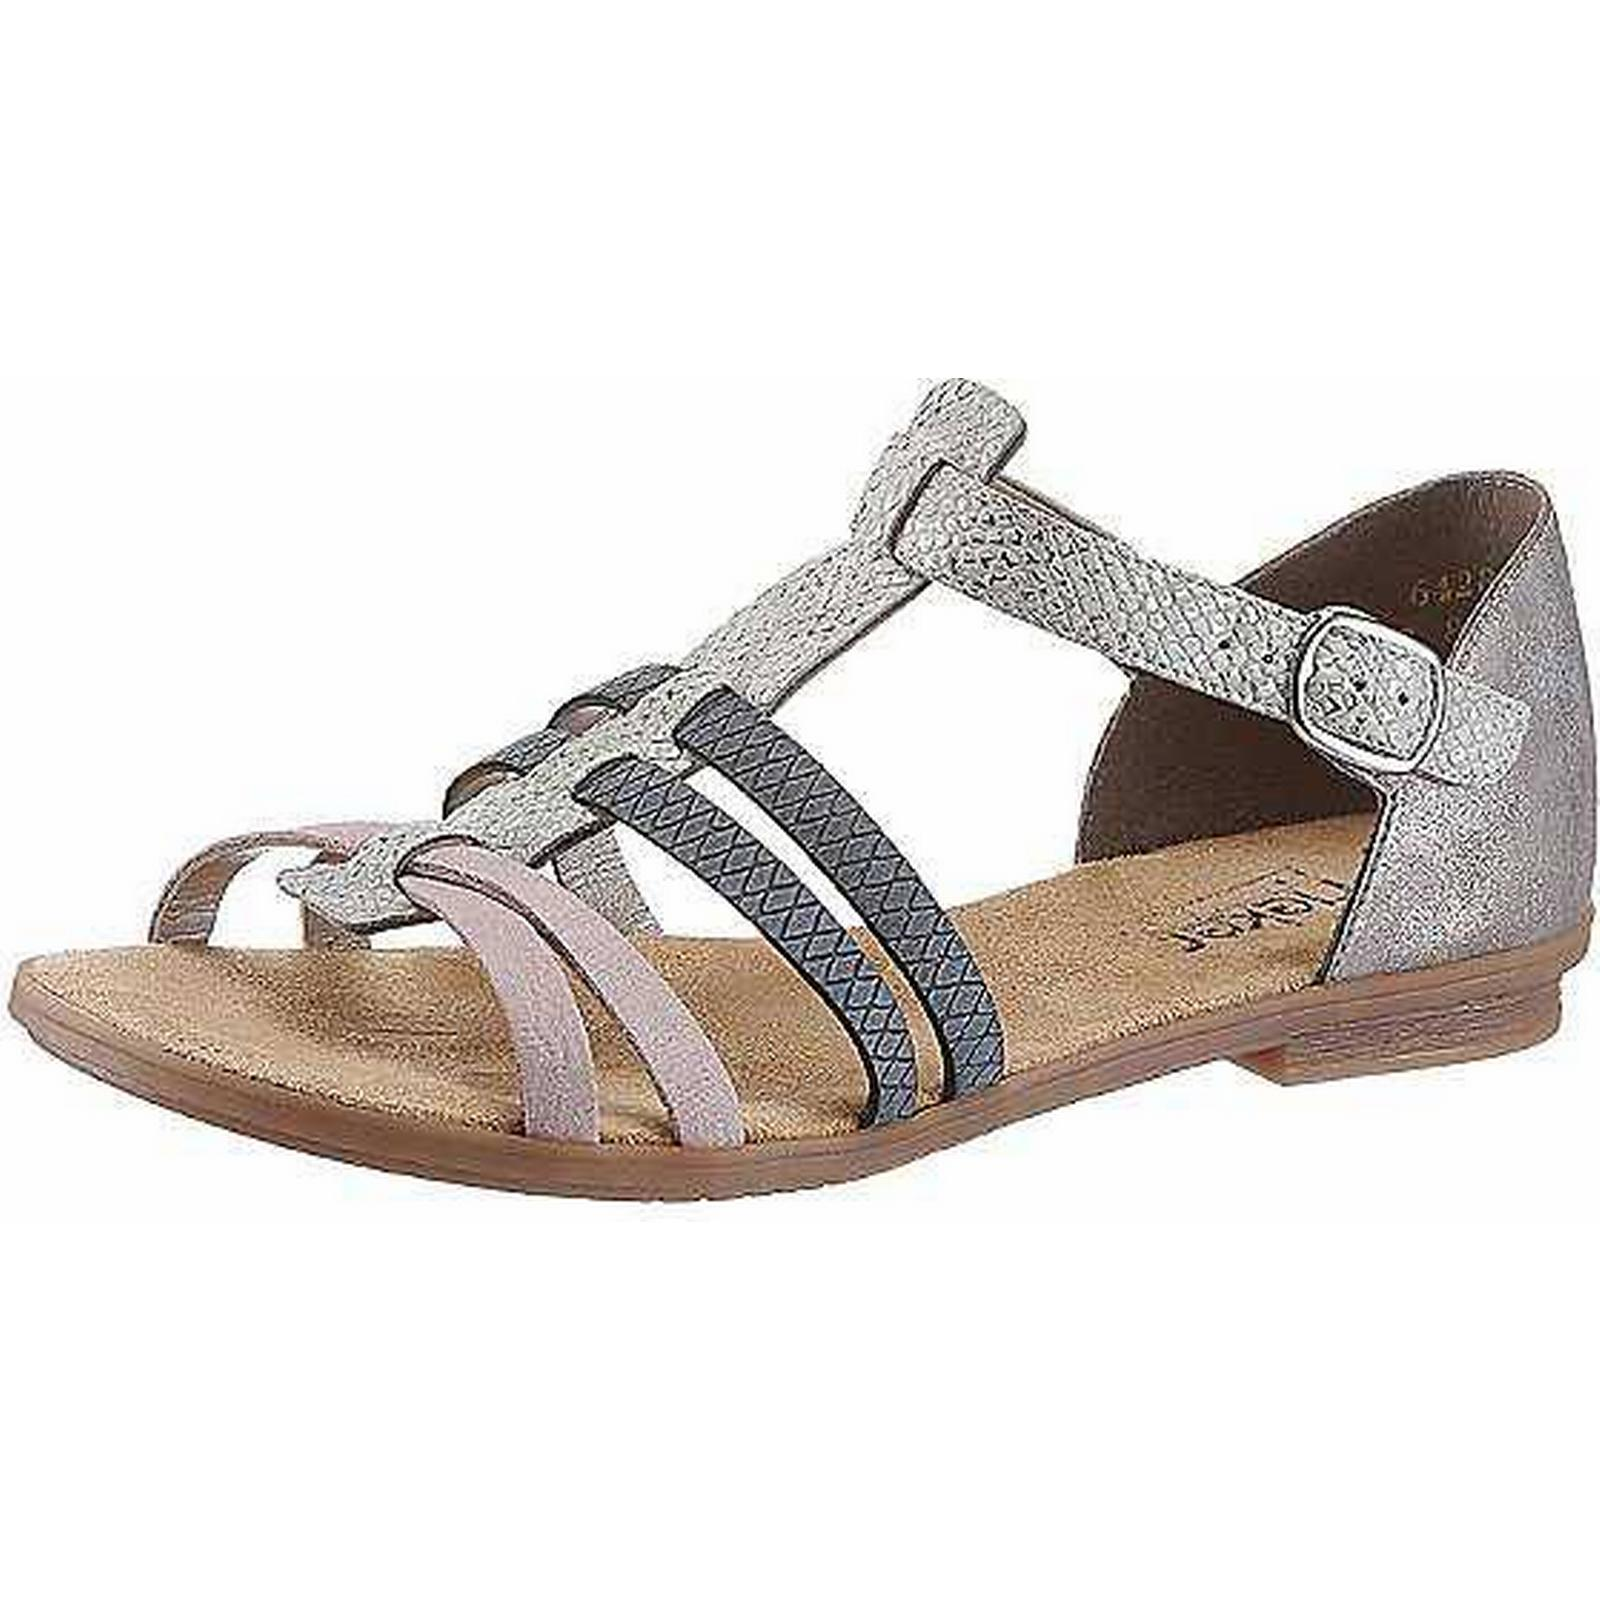 Rieker Reptile Embossed Sandals Excellent by Rieker-Man/Woman- Excellent Sandals Value 1d13b8